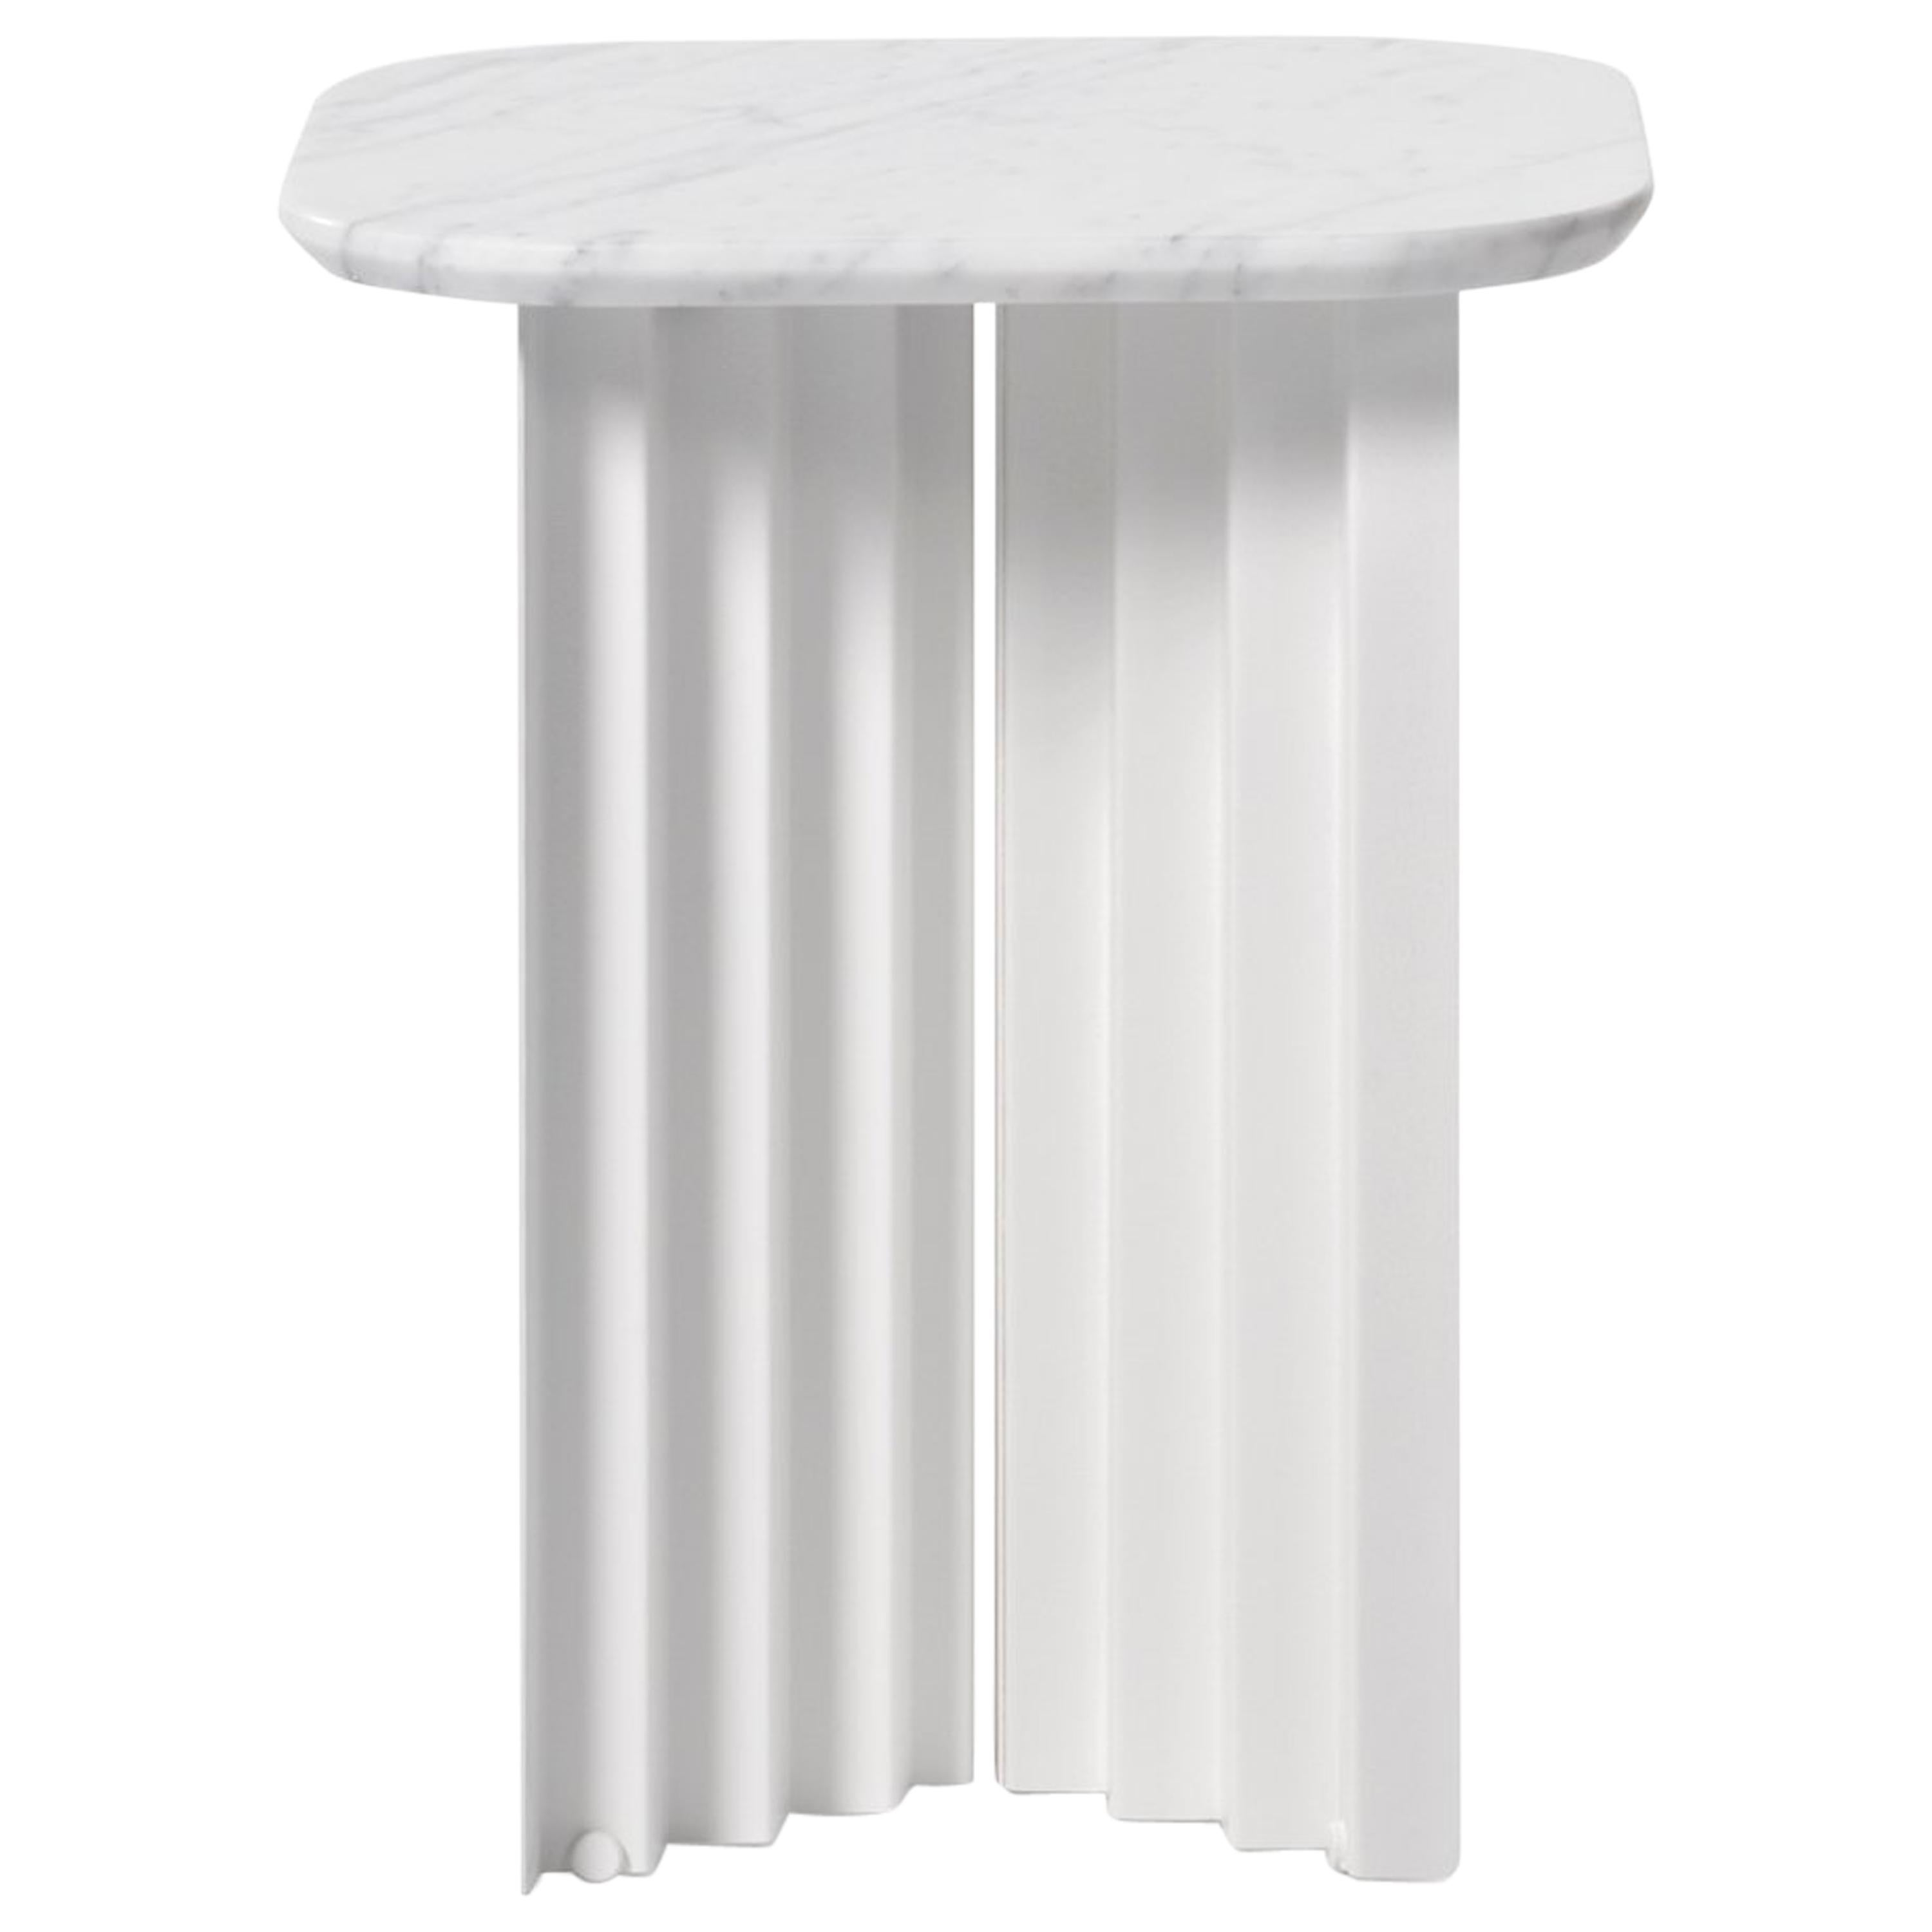 RS Barcelona Plec Small Table in White Marble by A.P.O.